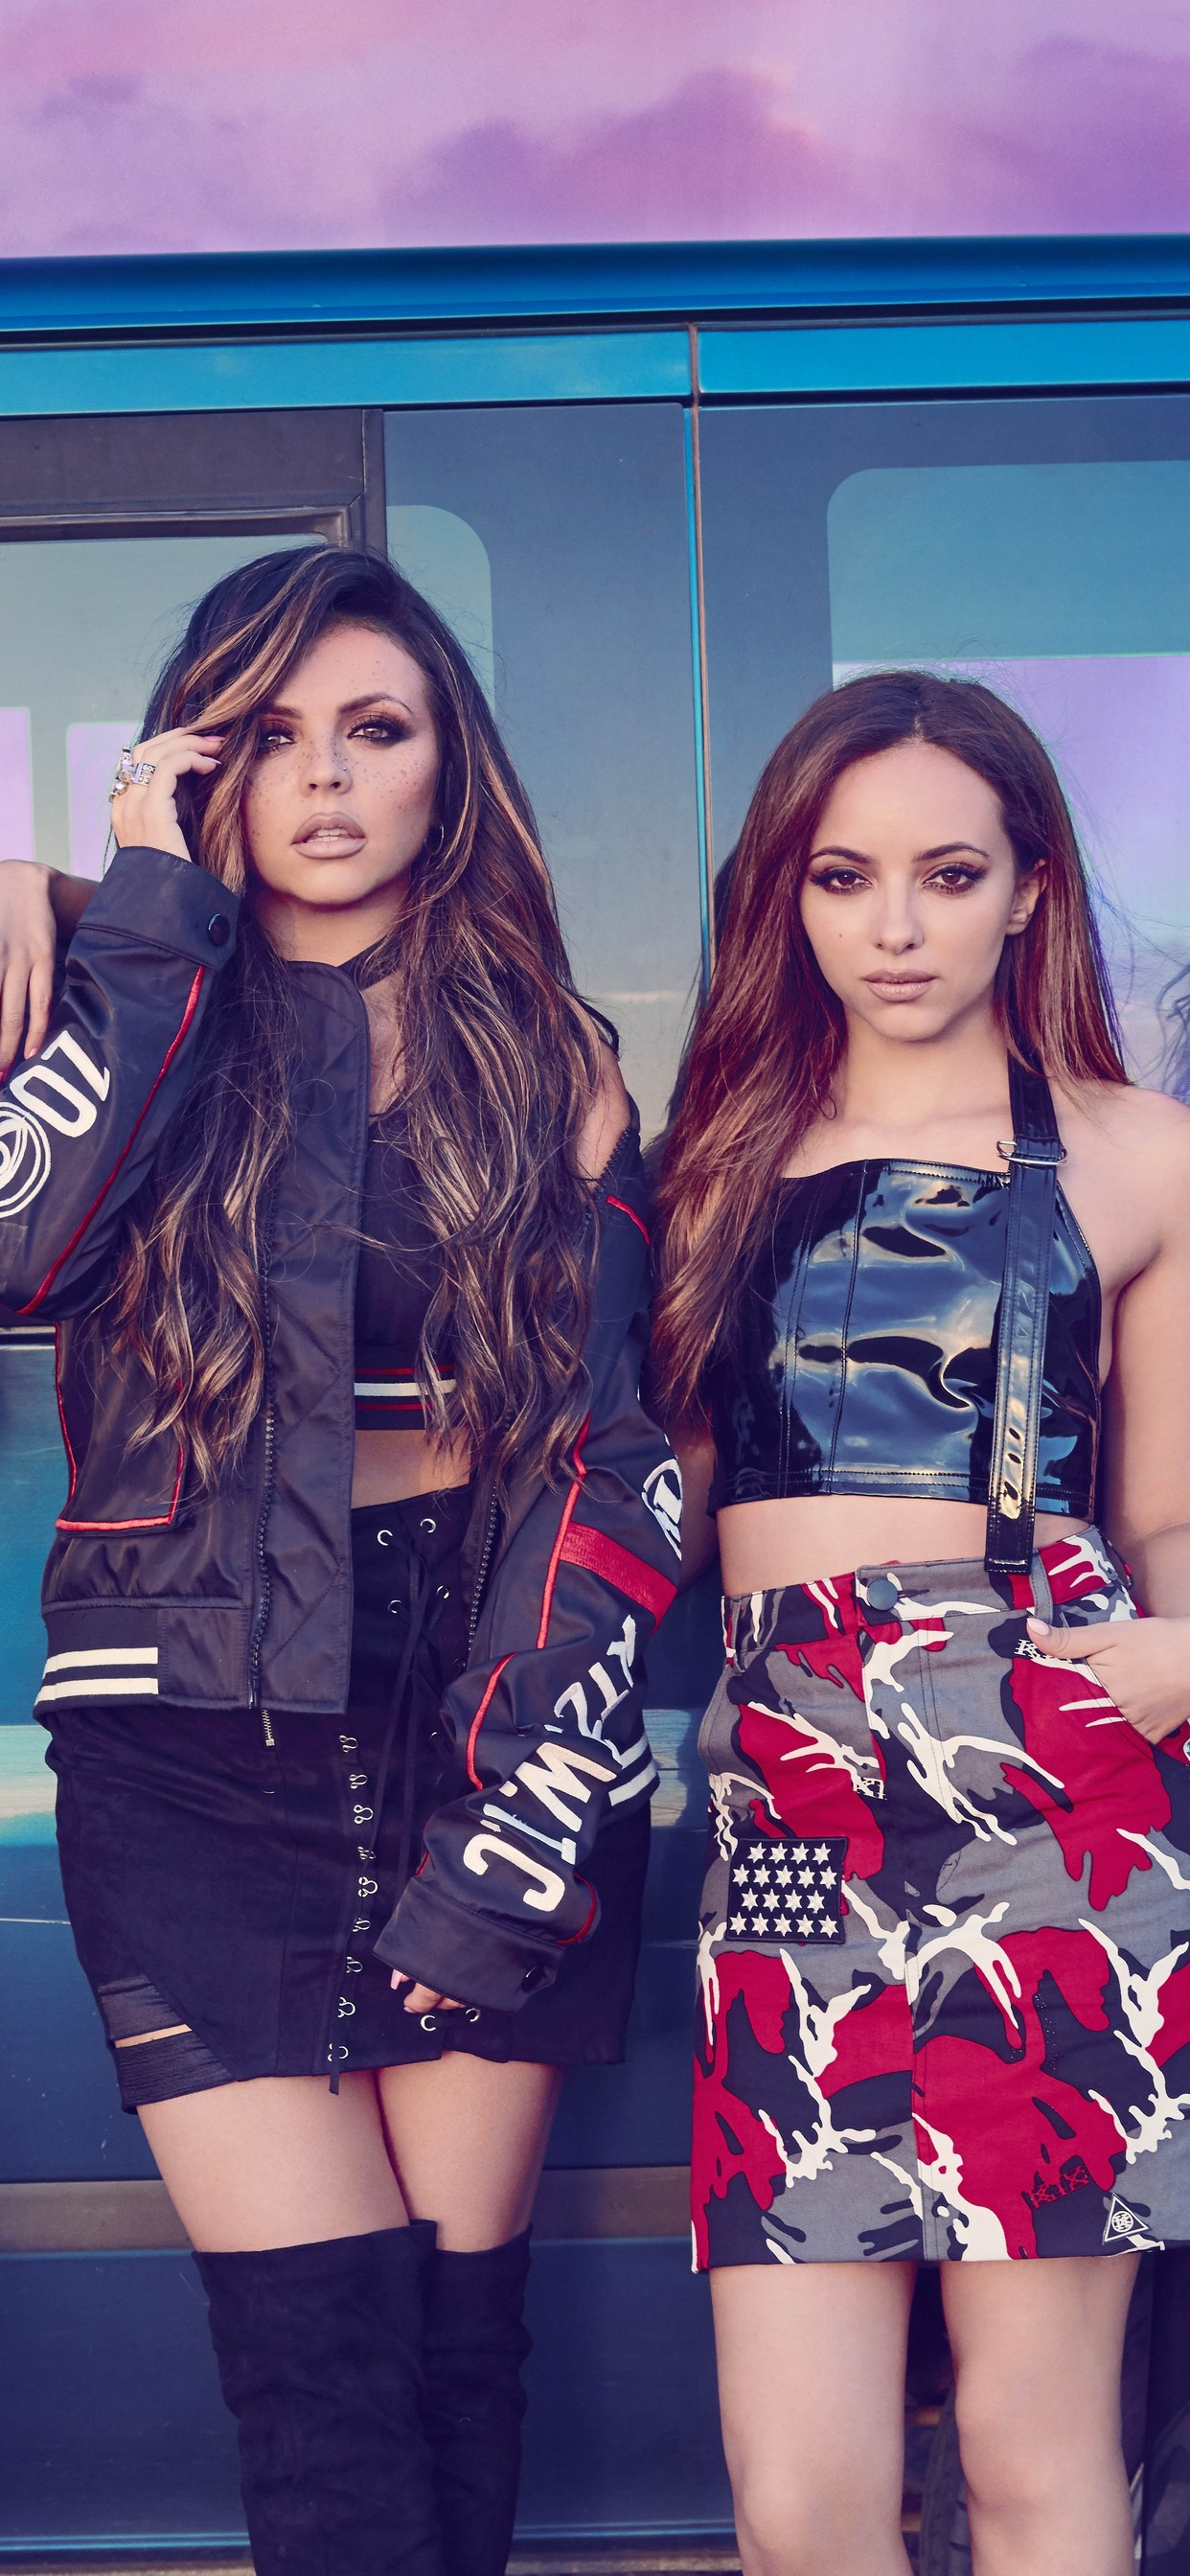 Little Mix No More Sad Songs , HD Wallpaper & Backgrounds